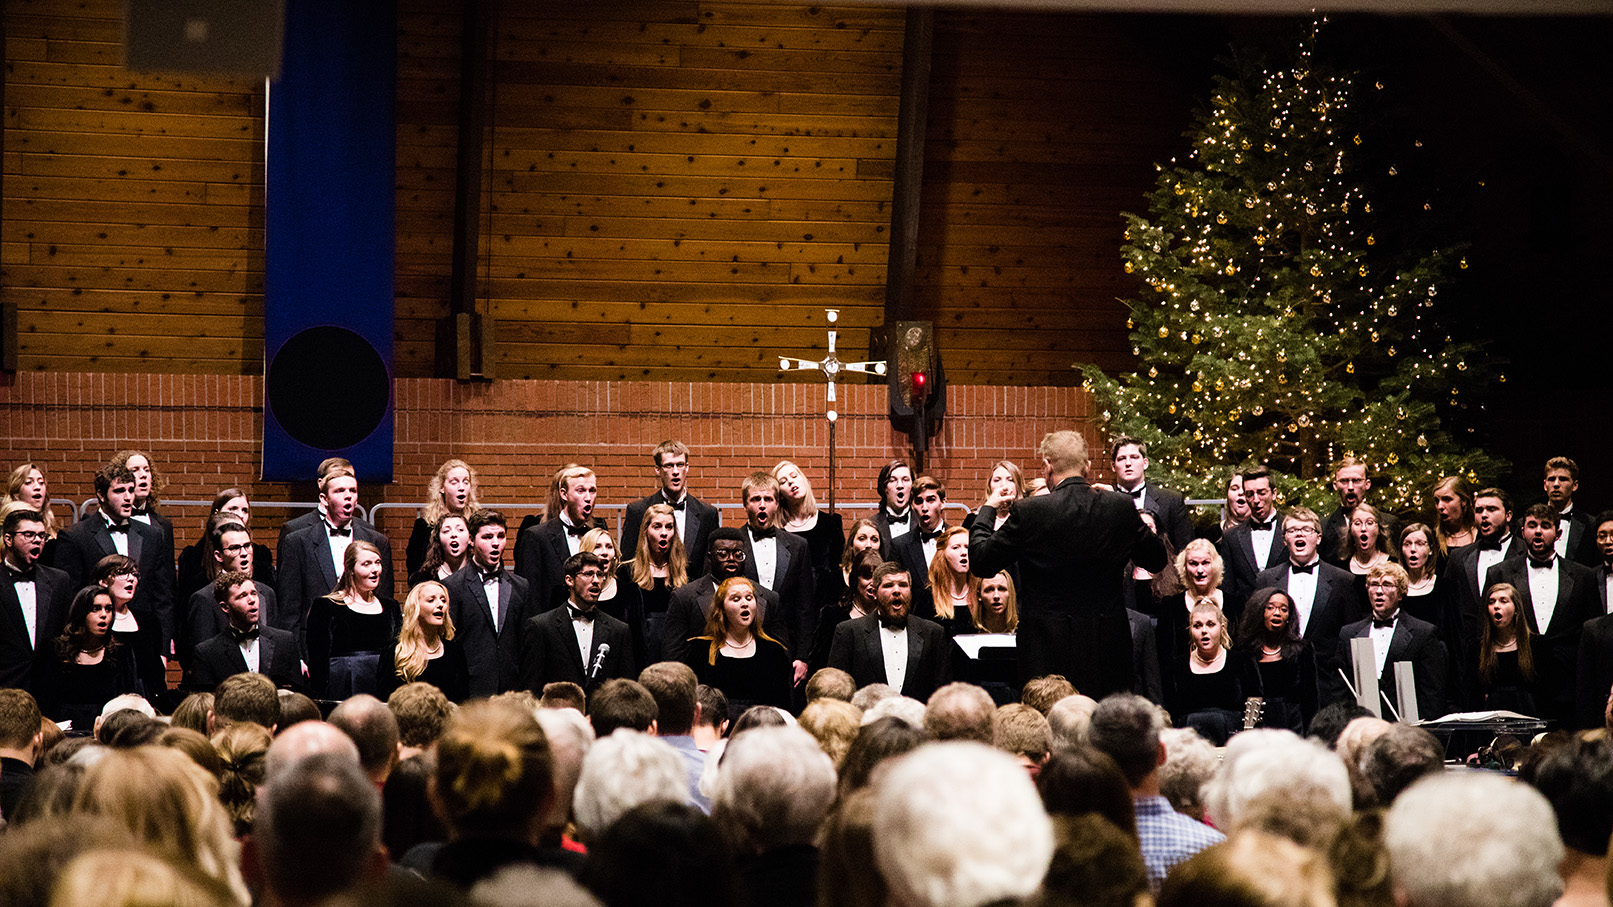 Concordia choir singing at a Christmas at Concordia concert